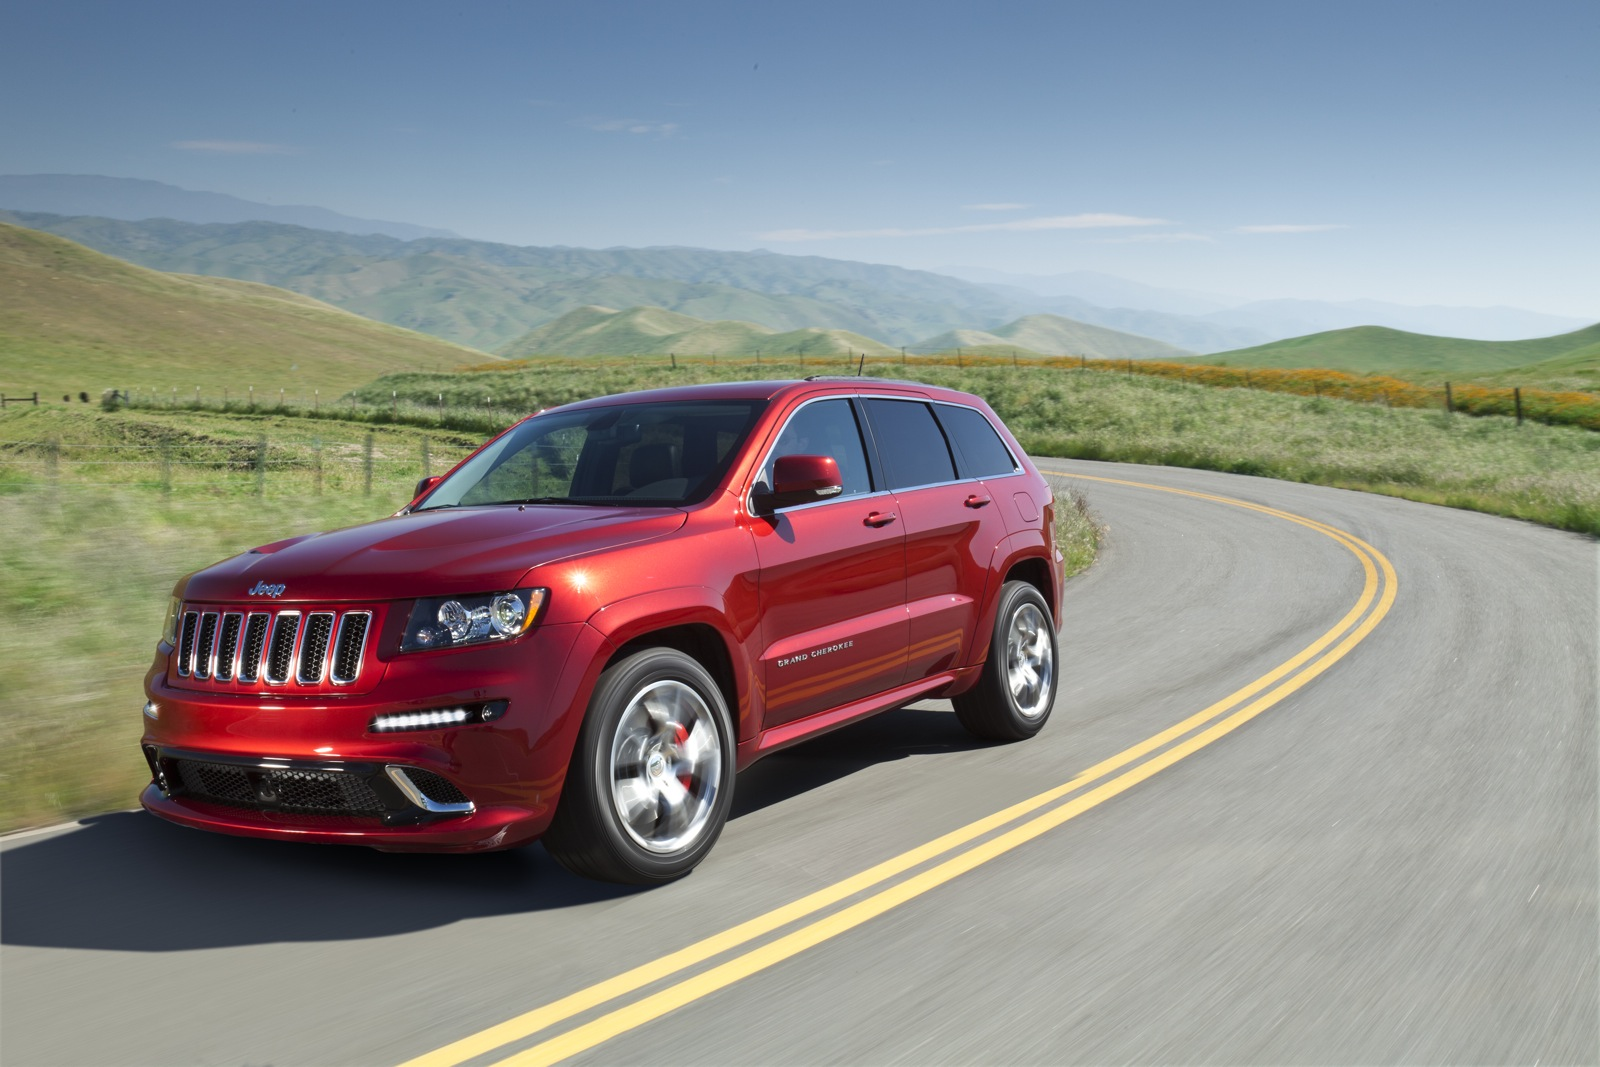 hennessey turns its tuning attention to 2013 jeep srt8. Black Bedroom Furniture Sets. Home Design Ideas